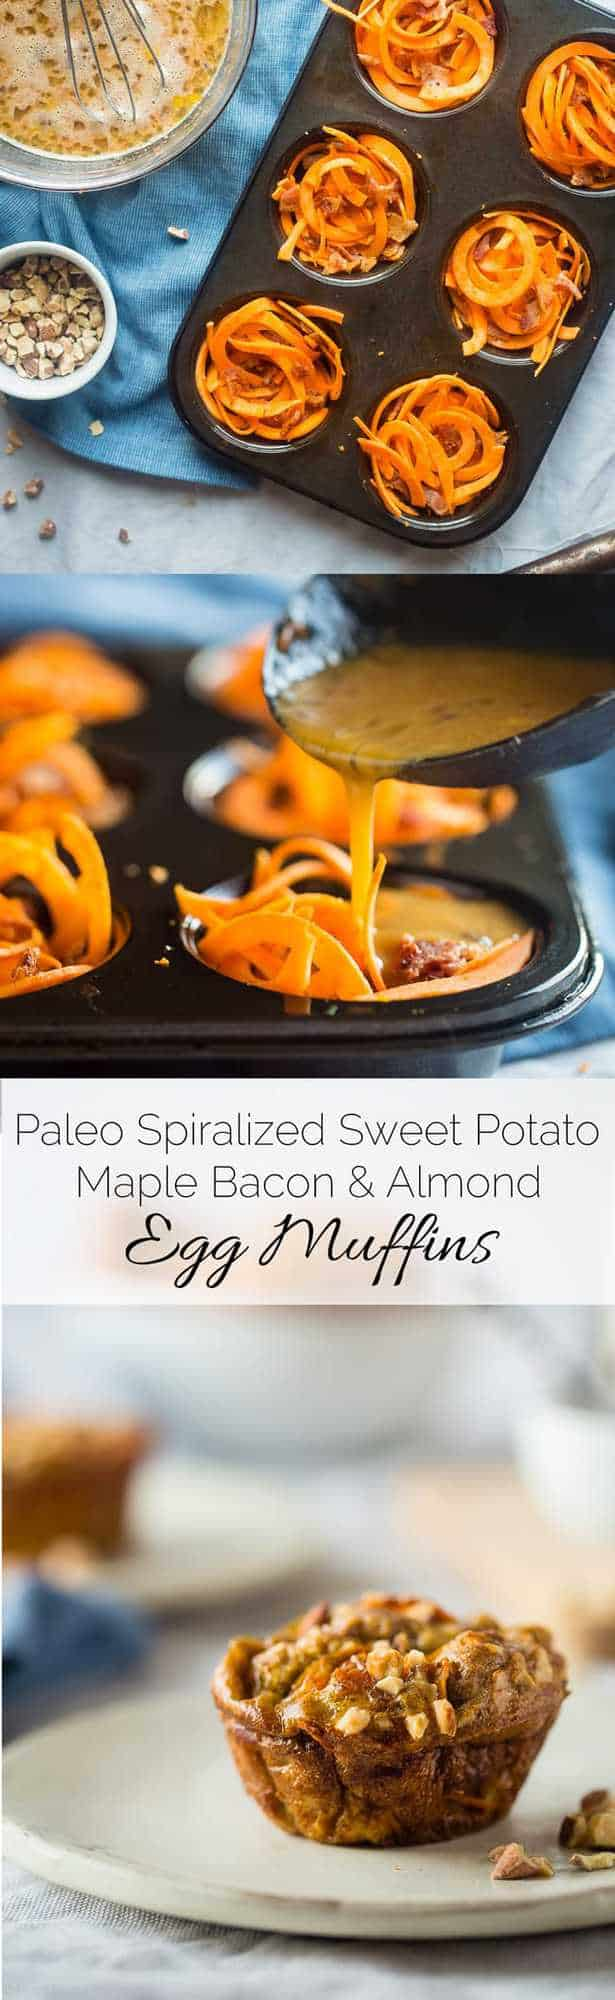 Paleo Egg Muffins with Maple Almond Sweet Potato Noodles and Bacon - A sweet and savory, portable breakfast or snack that is gluten free, protein packed, low carb and perfect for busy mornings! | Foodfaithfitness.com | @FoodFaithFit